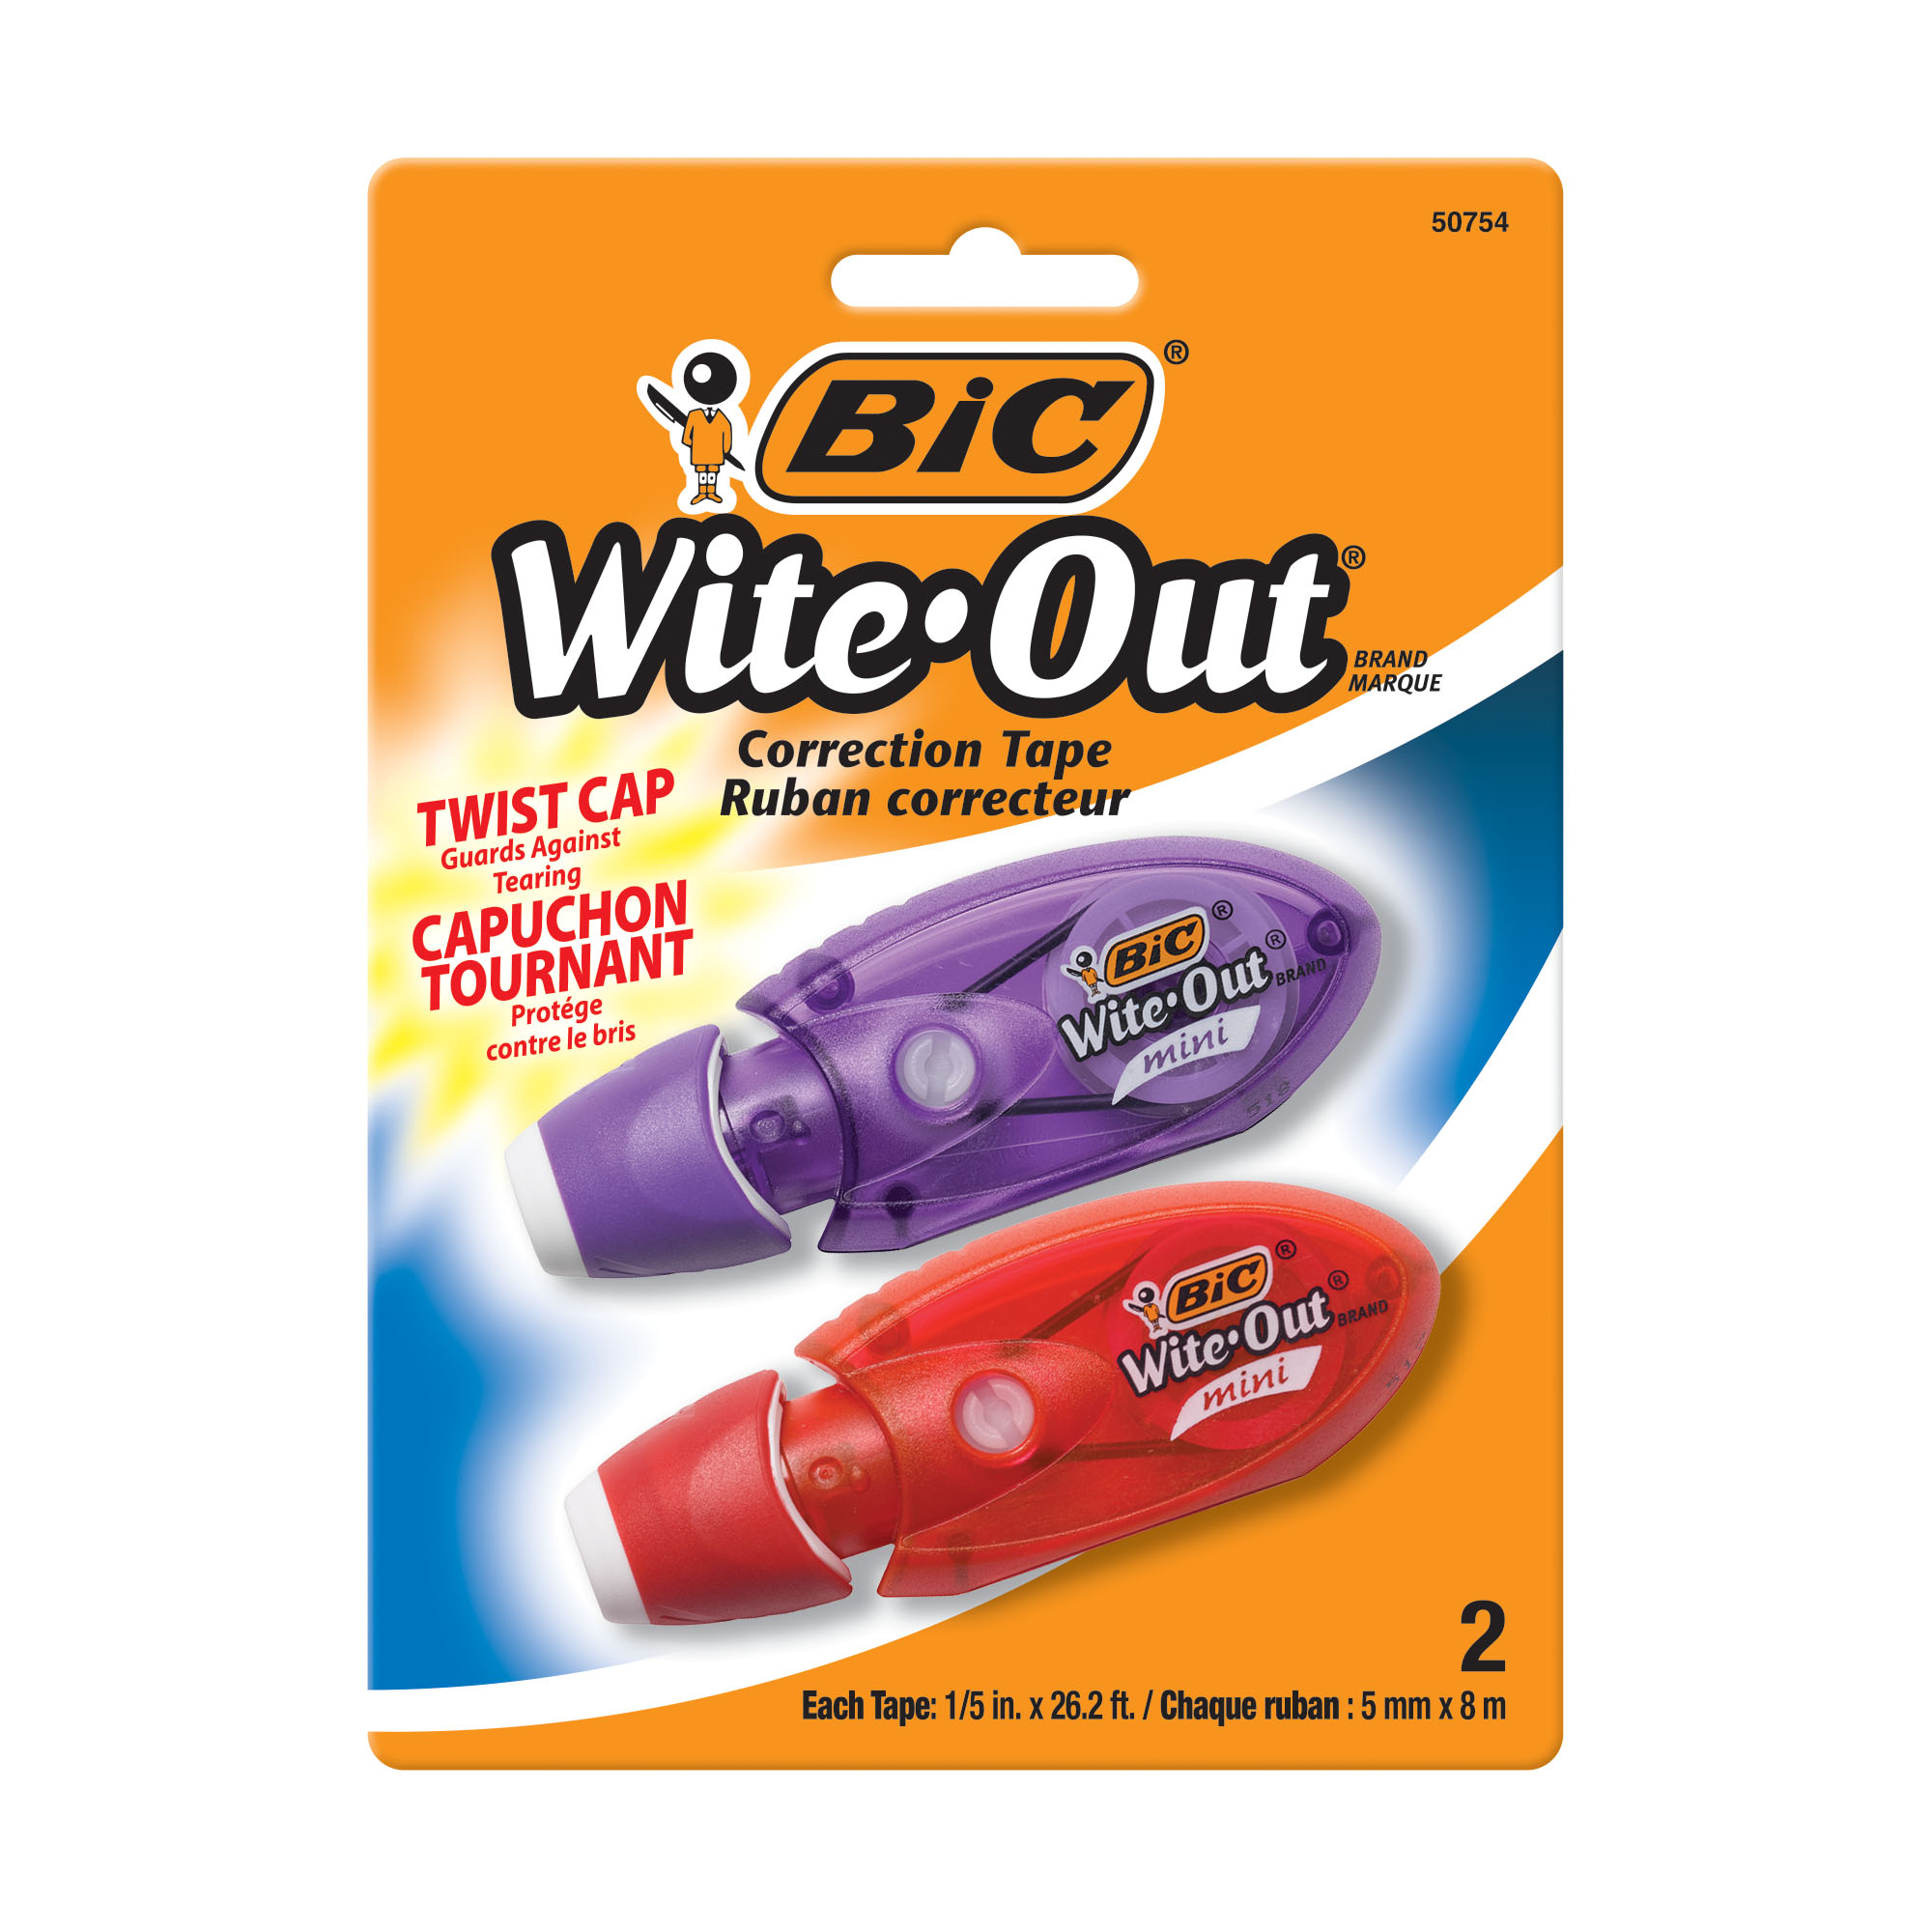 BIC Wite-Out Brand Mini Twist Correction Tape, White, 2 Count